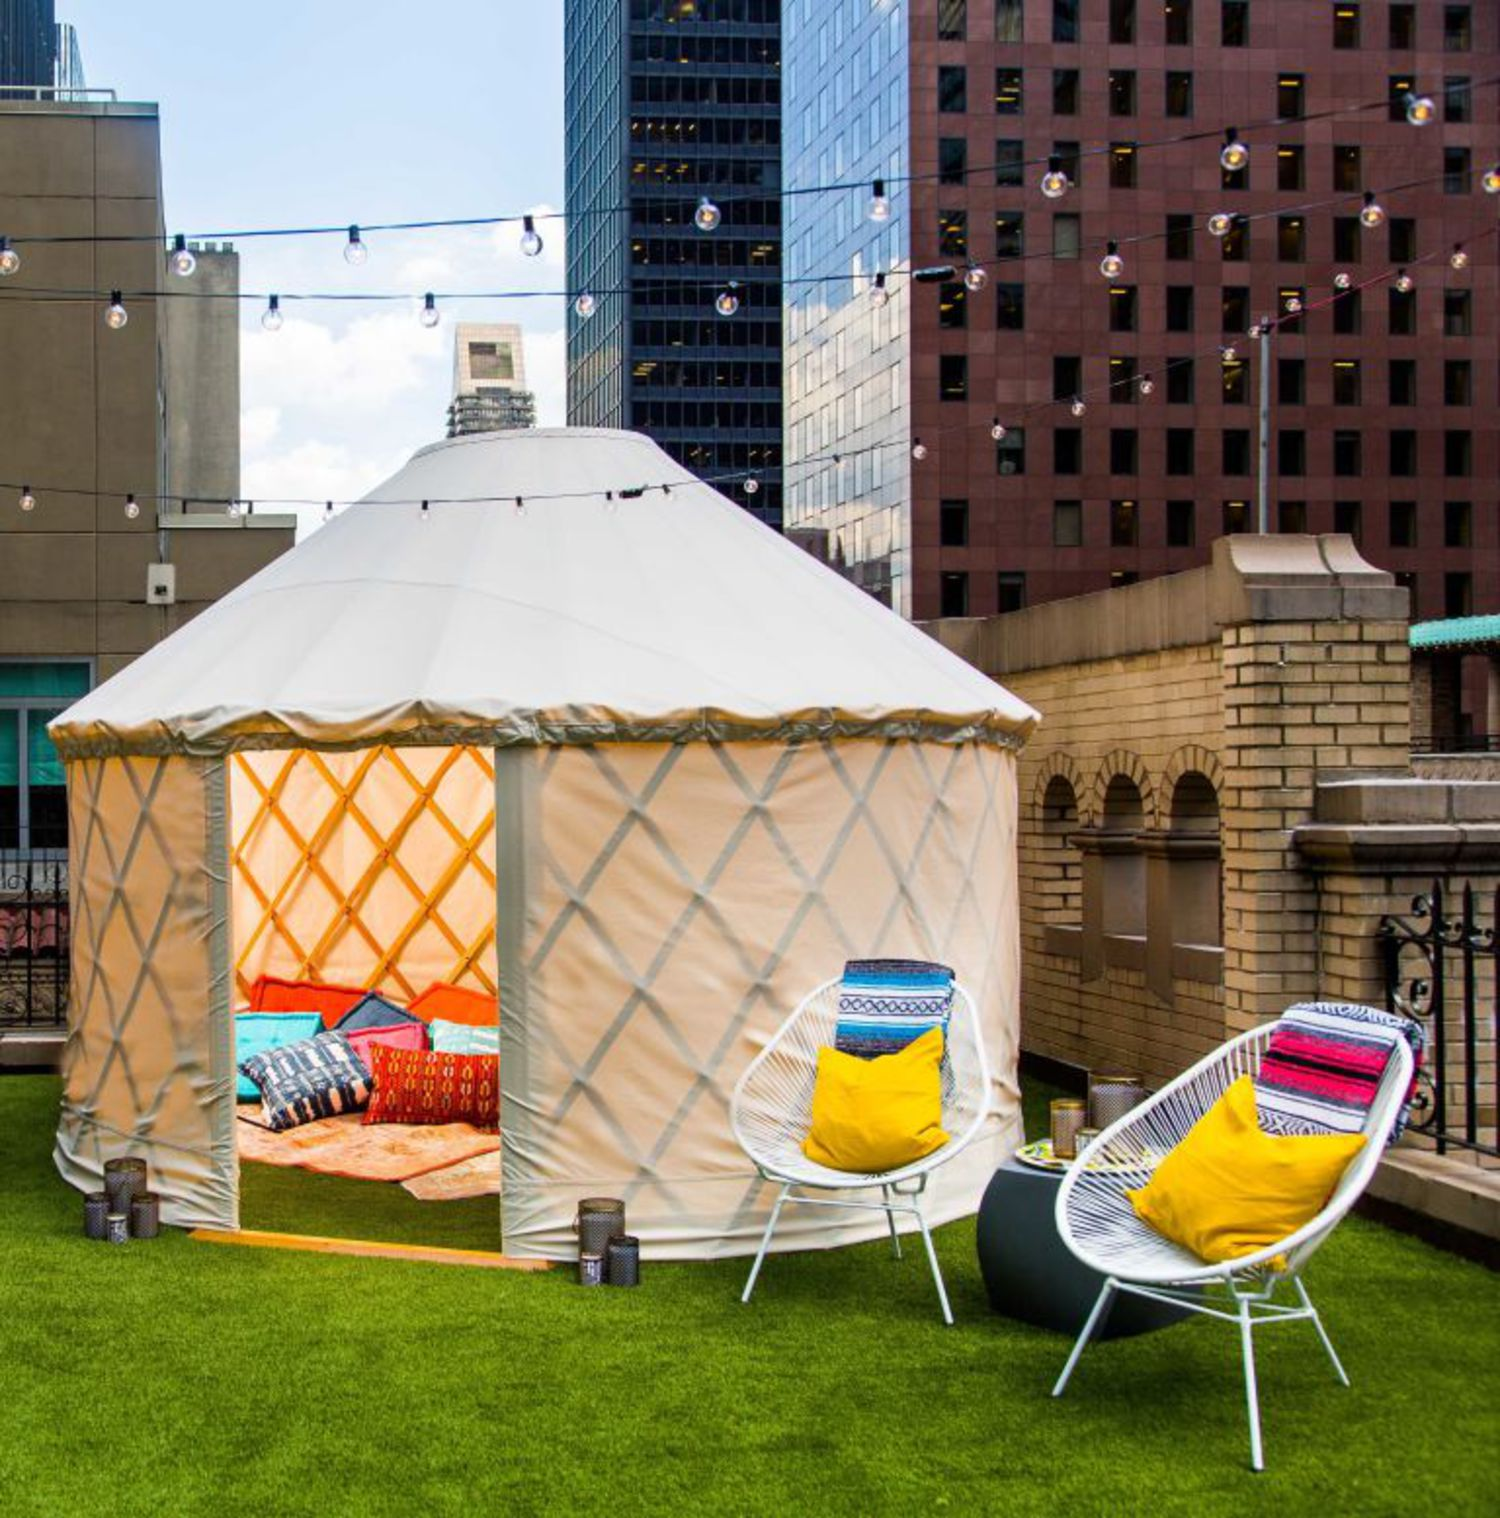 A night in the W Hotel's yurt starts at $2,000.